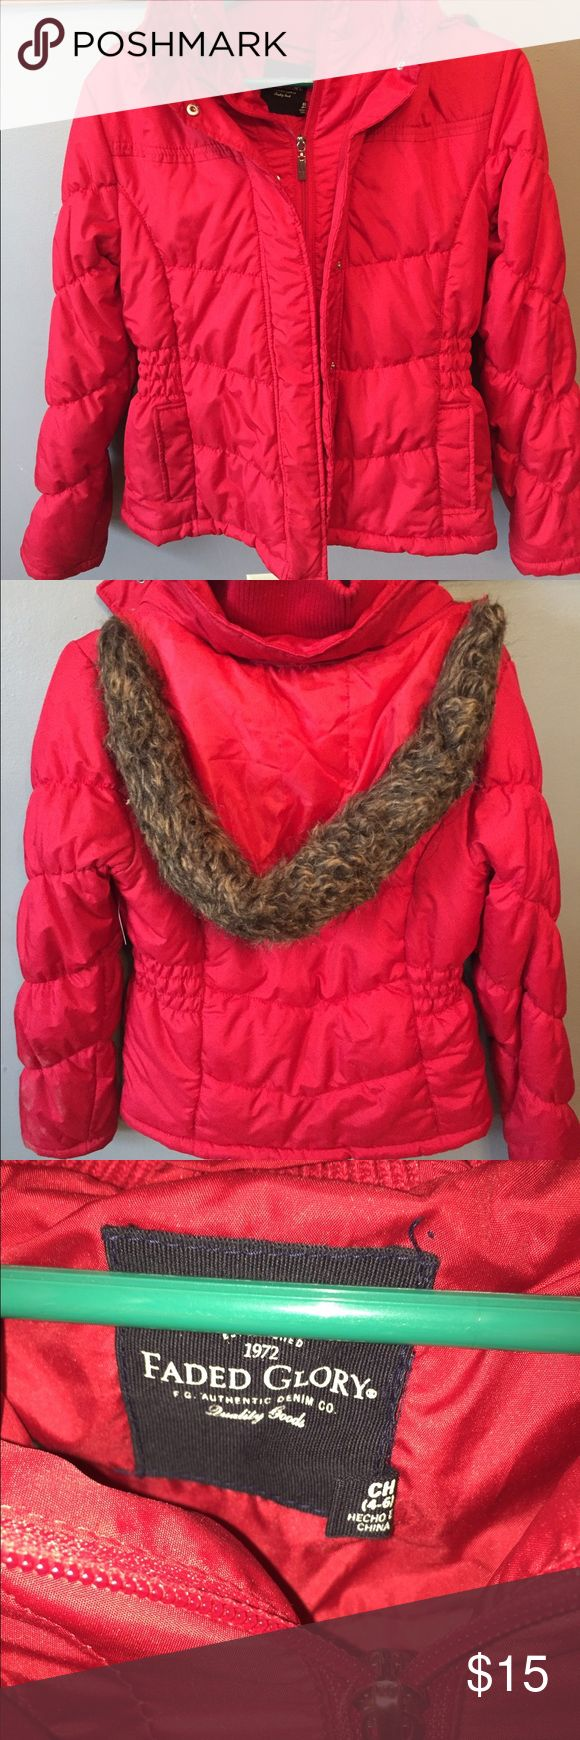 Winter puffer jacket Red winter puffer jacket with removable hood.  Keeps nice and warm this winter! Faded Glory Jackets & Coats Puffers